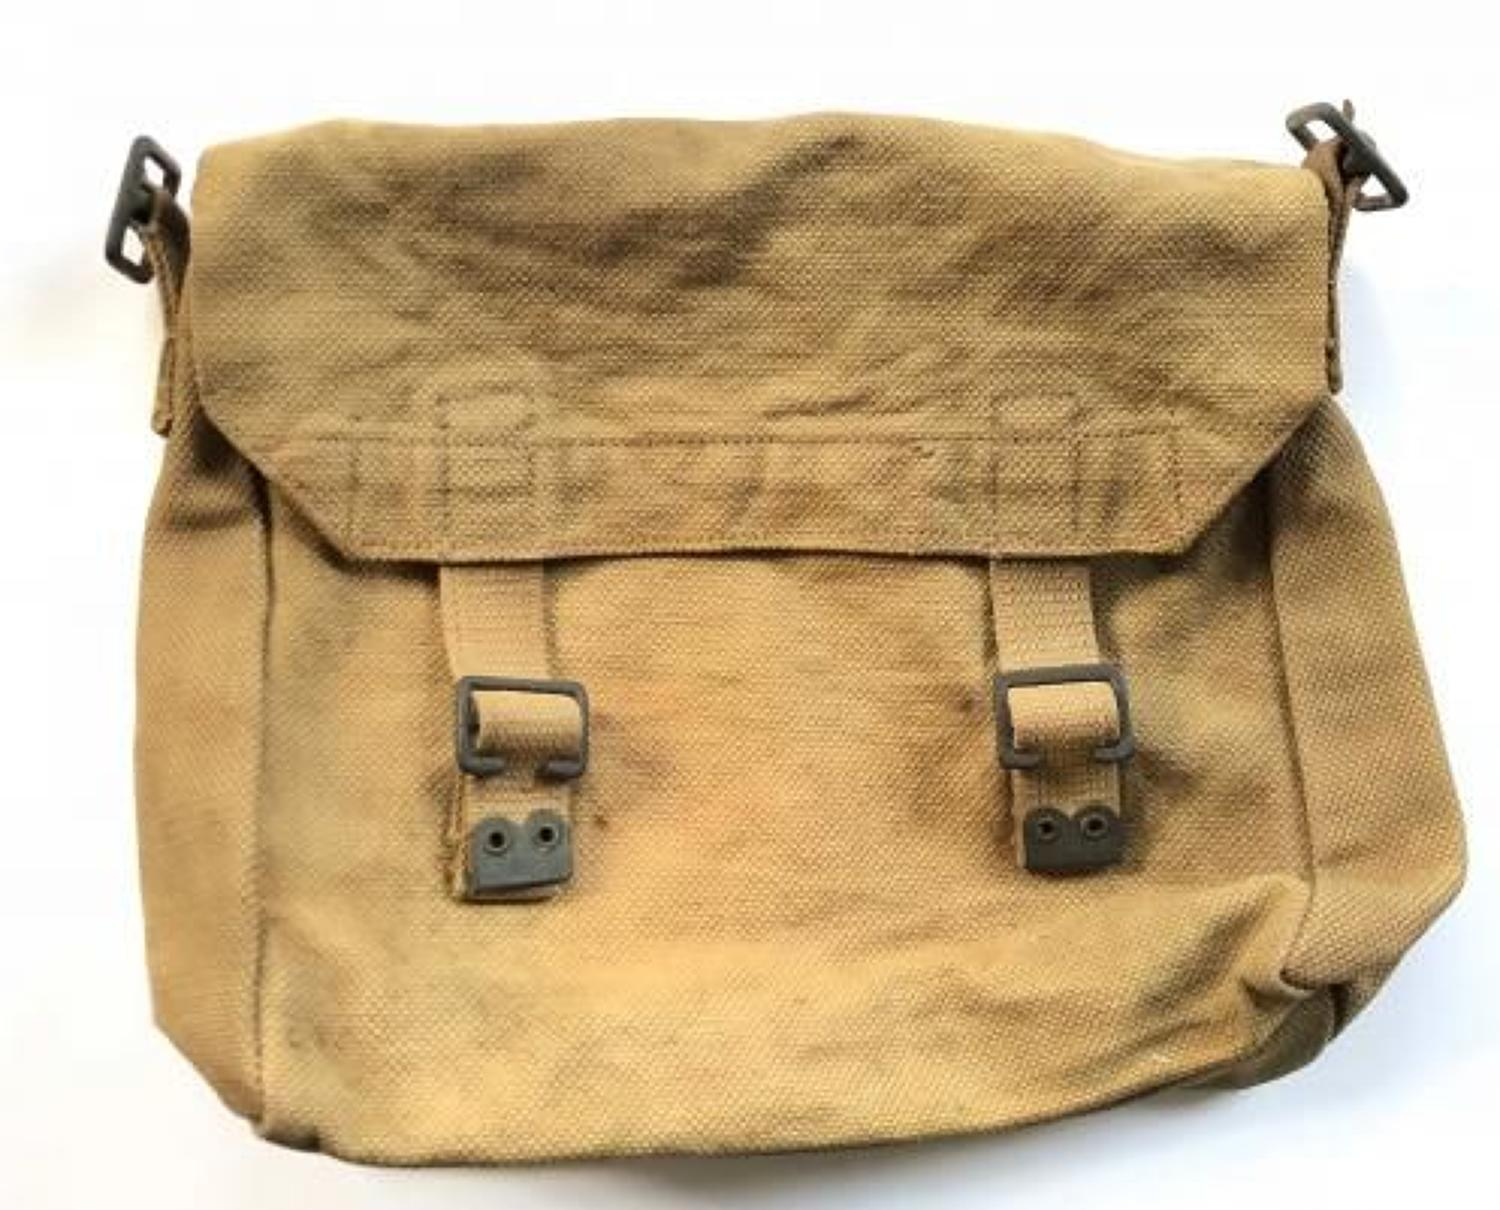 WW1 British Army 1914 Pattern Equipment Side Bag.